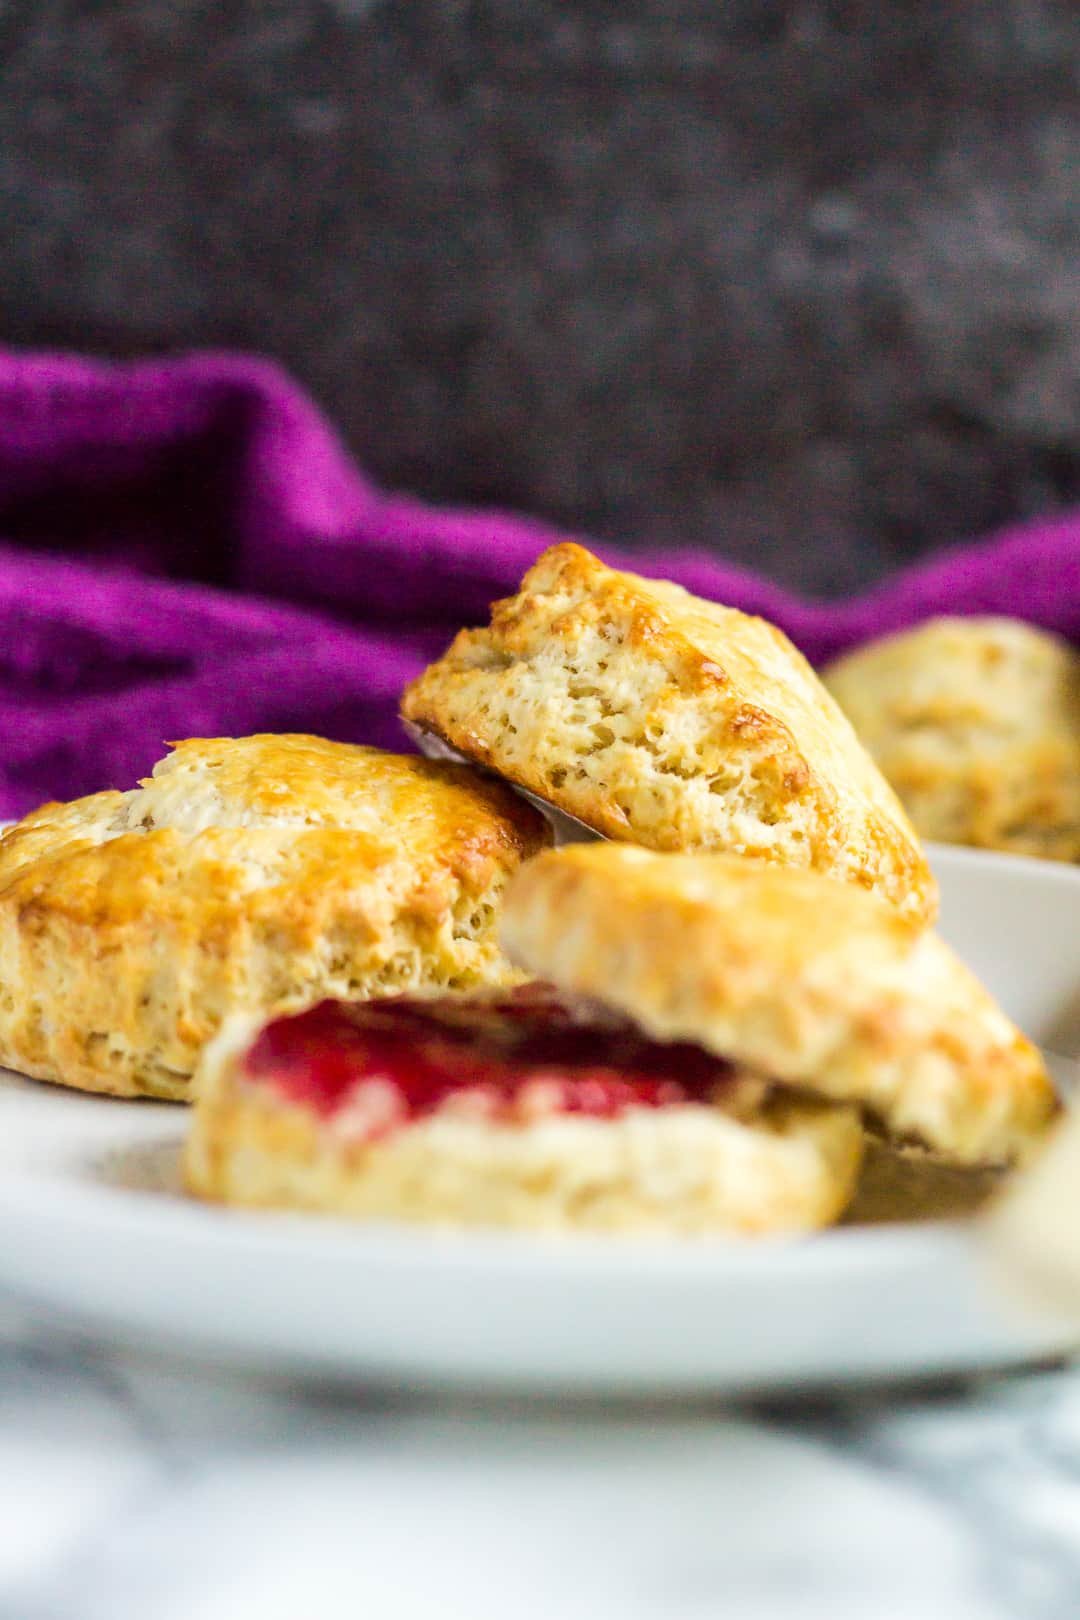 A sideview shot of a few Classic English Scones served on a small white plate. One scone is cut in half and filled with jam.